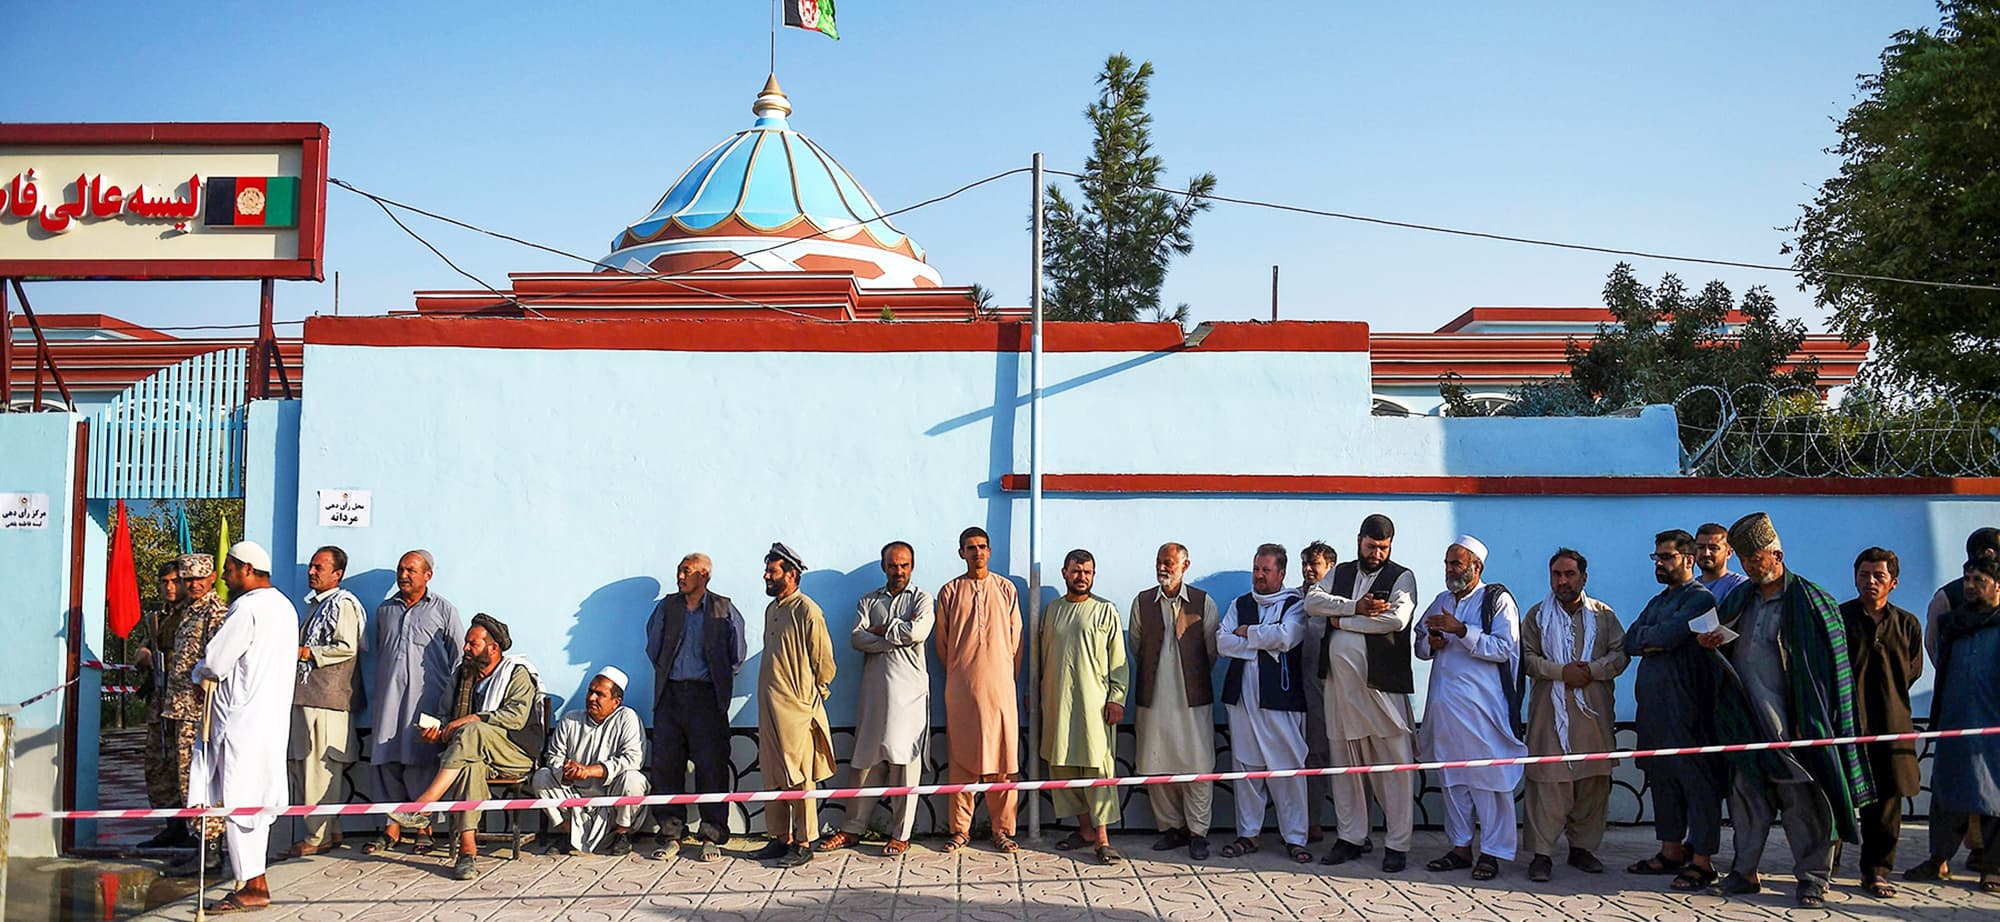 TOPSHOT - Men queue to cast their vote at a polling station in Mazar-i-Sharif on September 28, 2019. - Insurgents worked to disrupt Afghanistan's presidential election on September 28, with a series of blasts reported across the country as voters headed to the polls and troops flooded the streets of the capital. (Photo by FARSHAD USYAN / AFP) — AFP or licensors